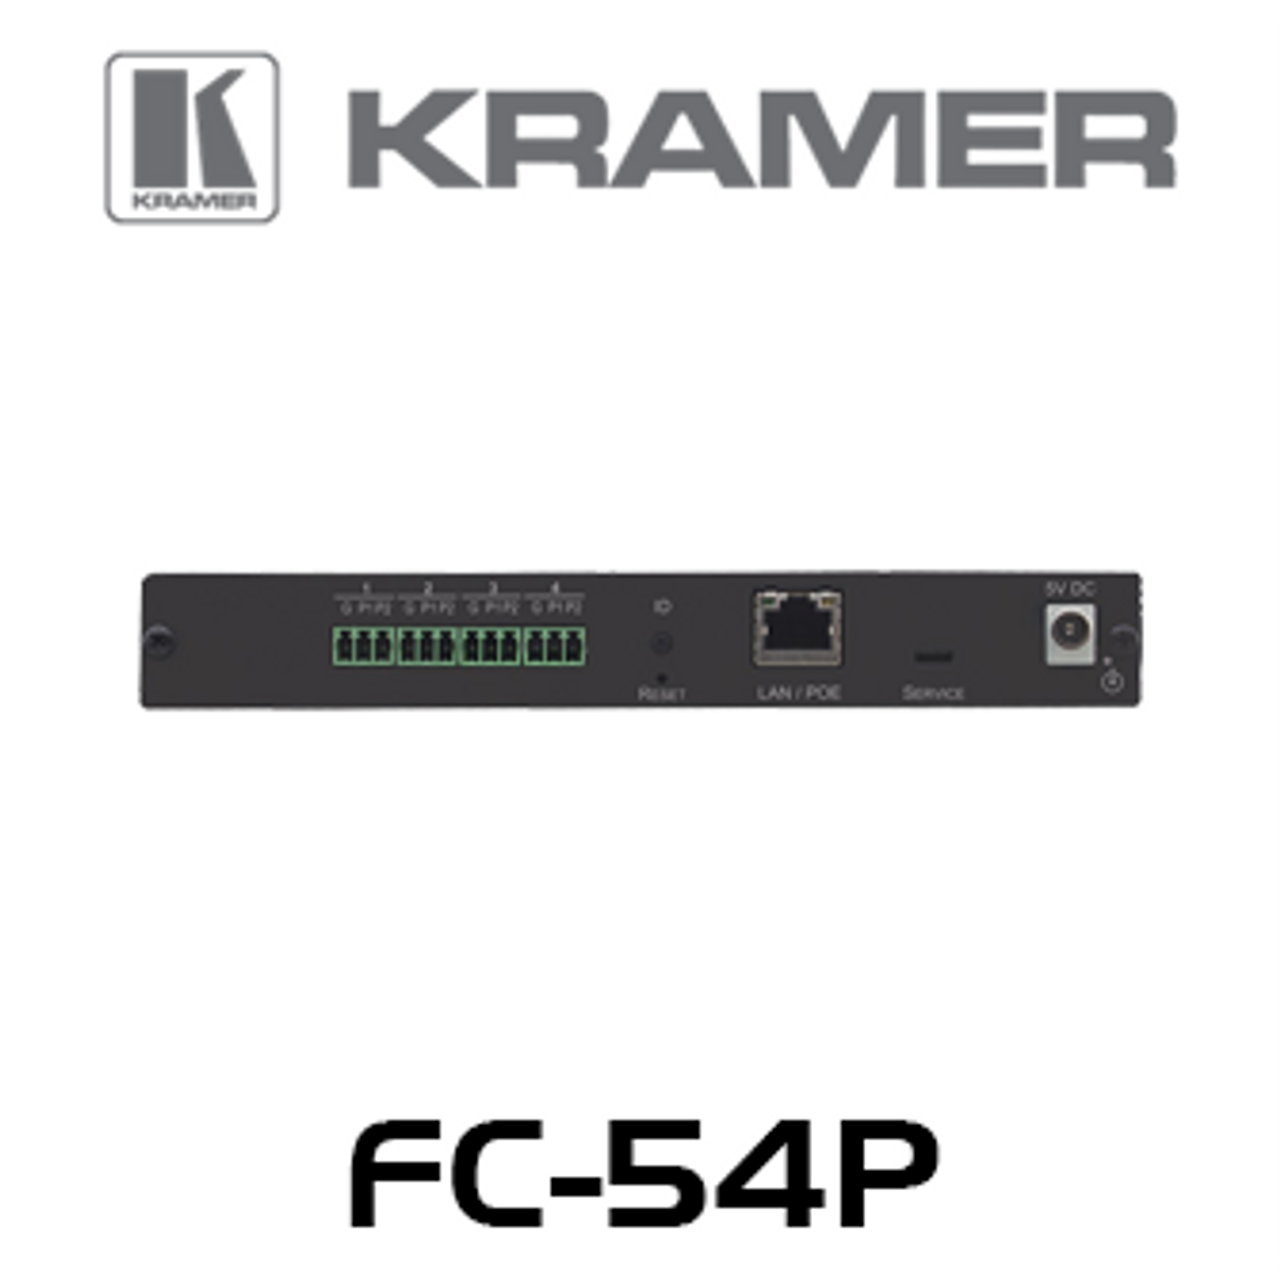 Kramer FC-54P 4-Port Multi-Function PoE Control Gateway